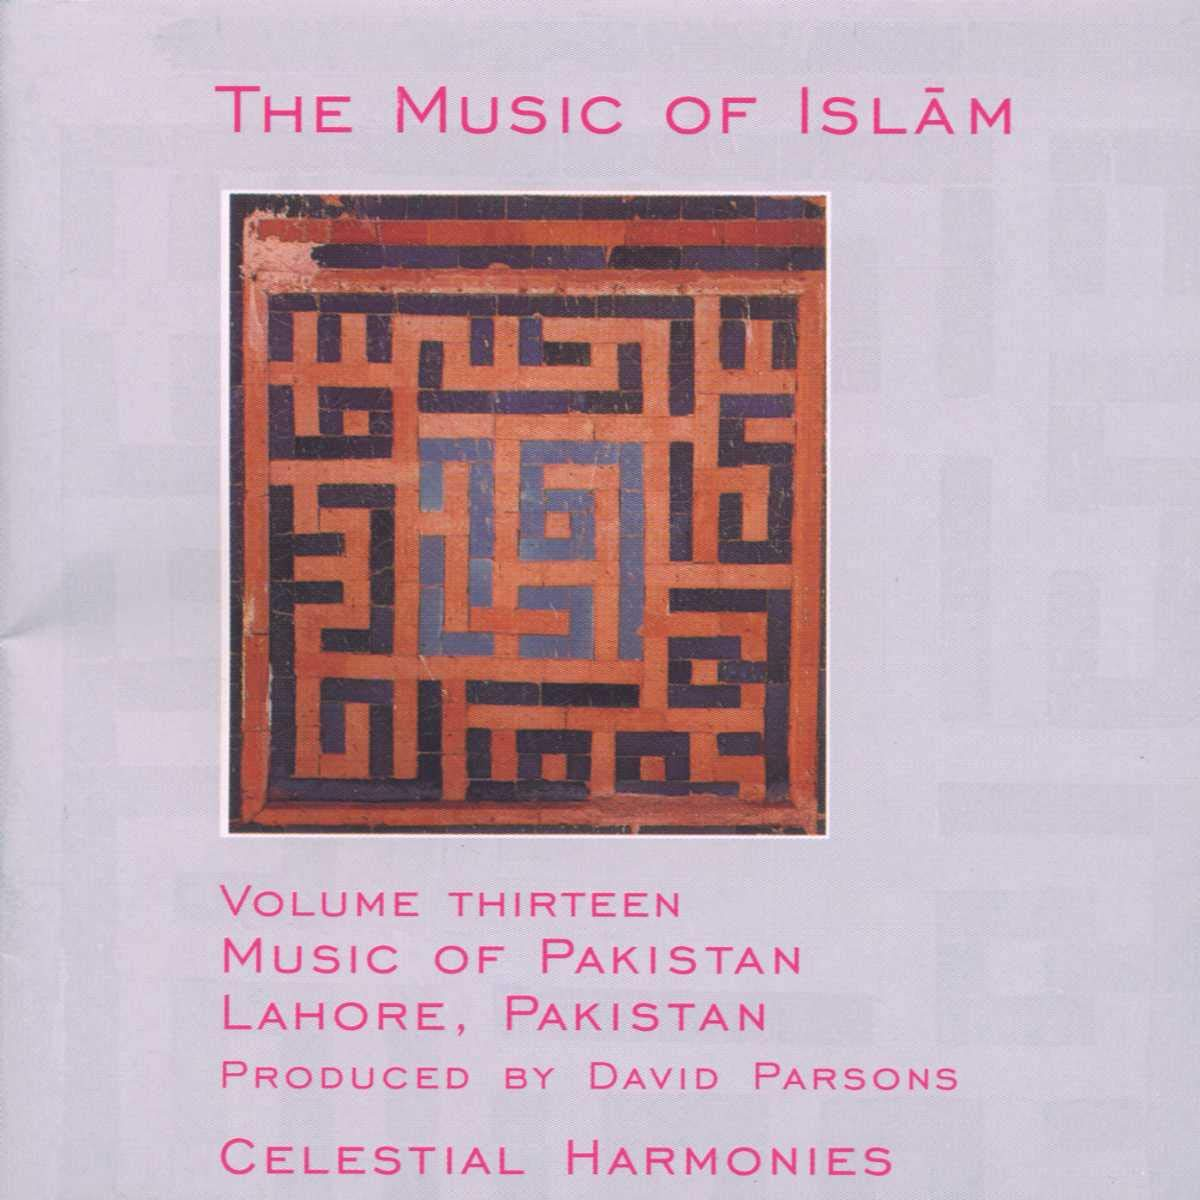 Image: The Music of Islam Volume 13 Cover Art